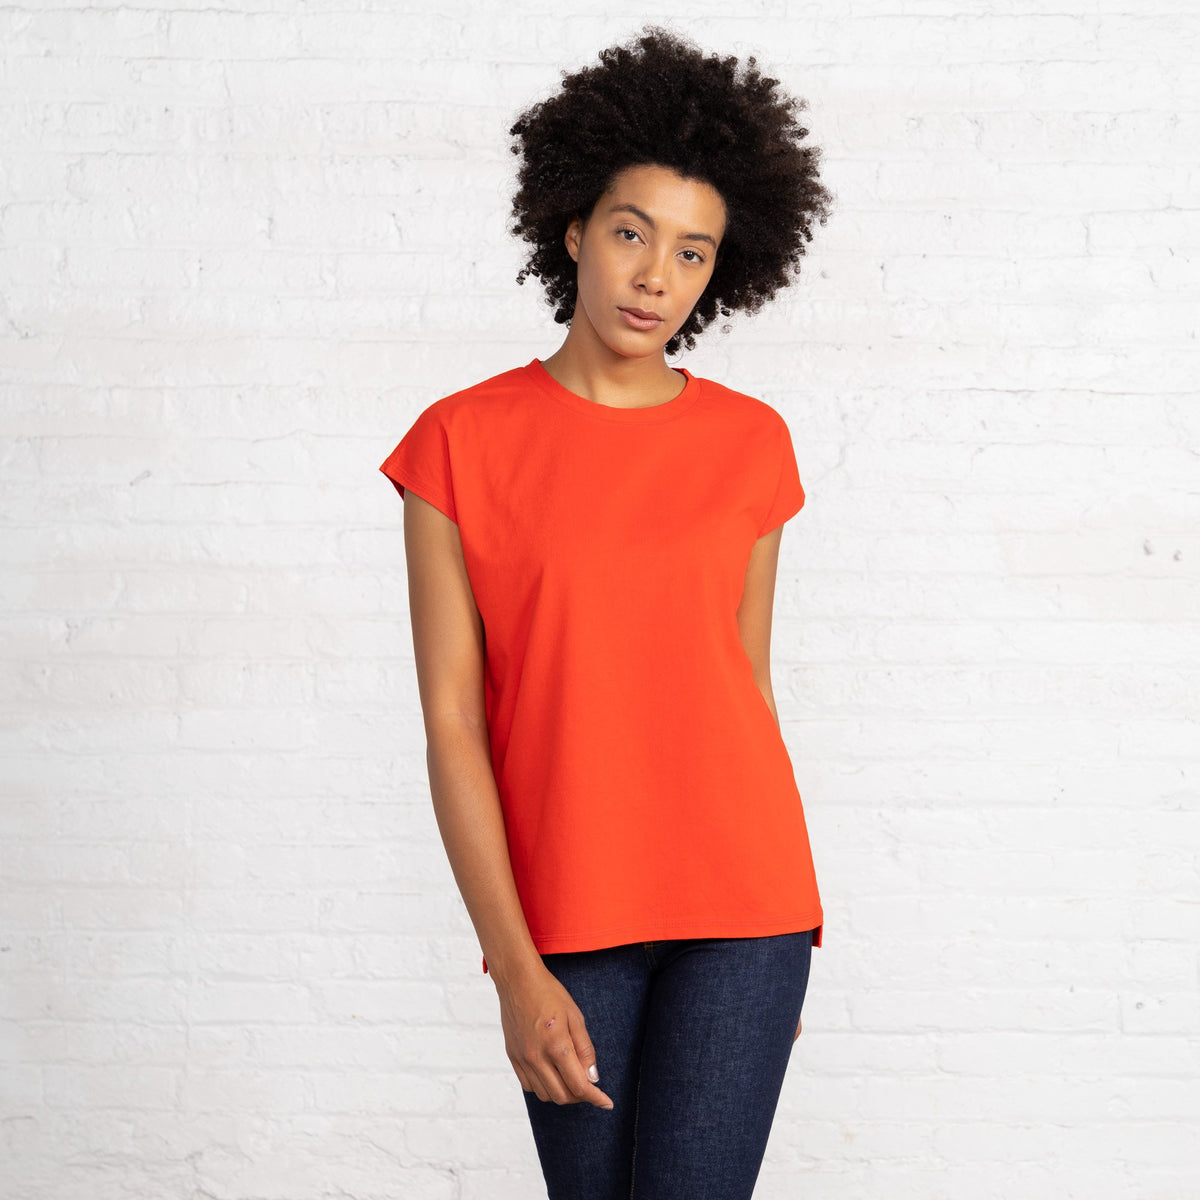 Dolman T Color:Bright Red Combed Cotton New T-shirts Women's T-shirts